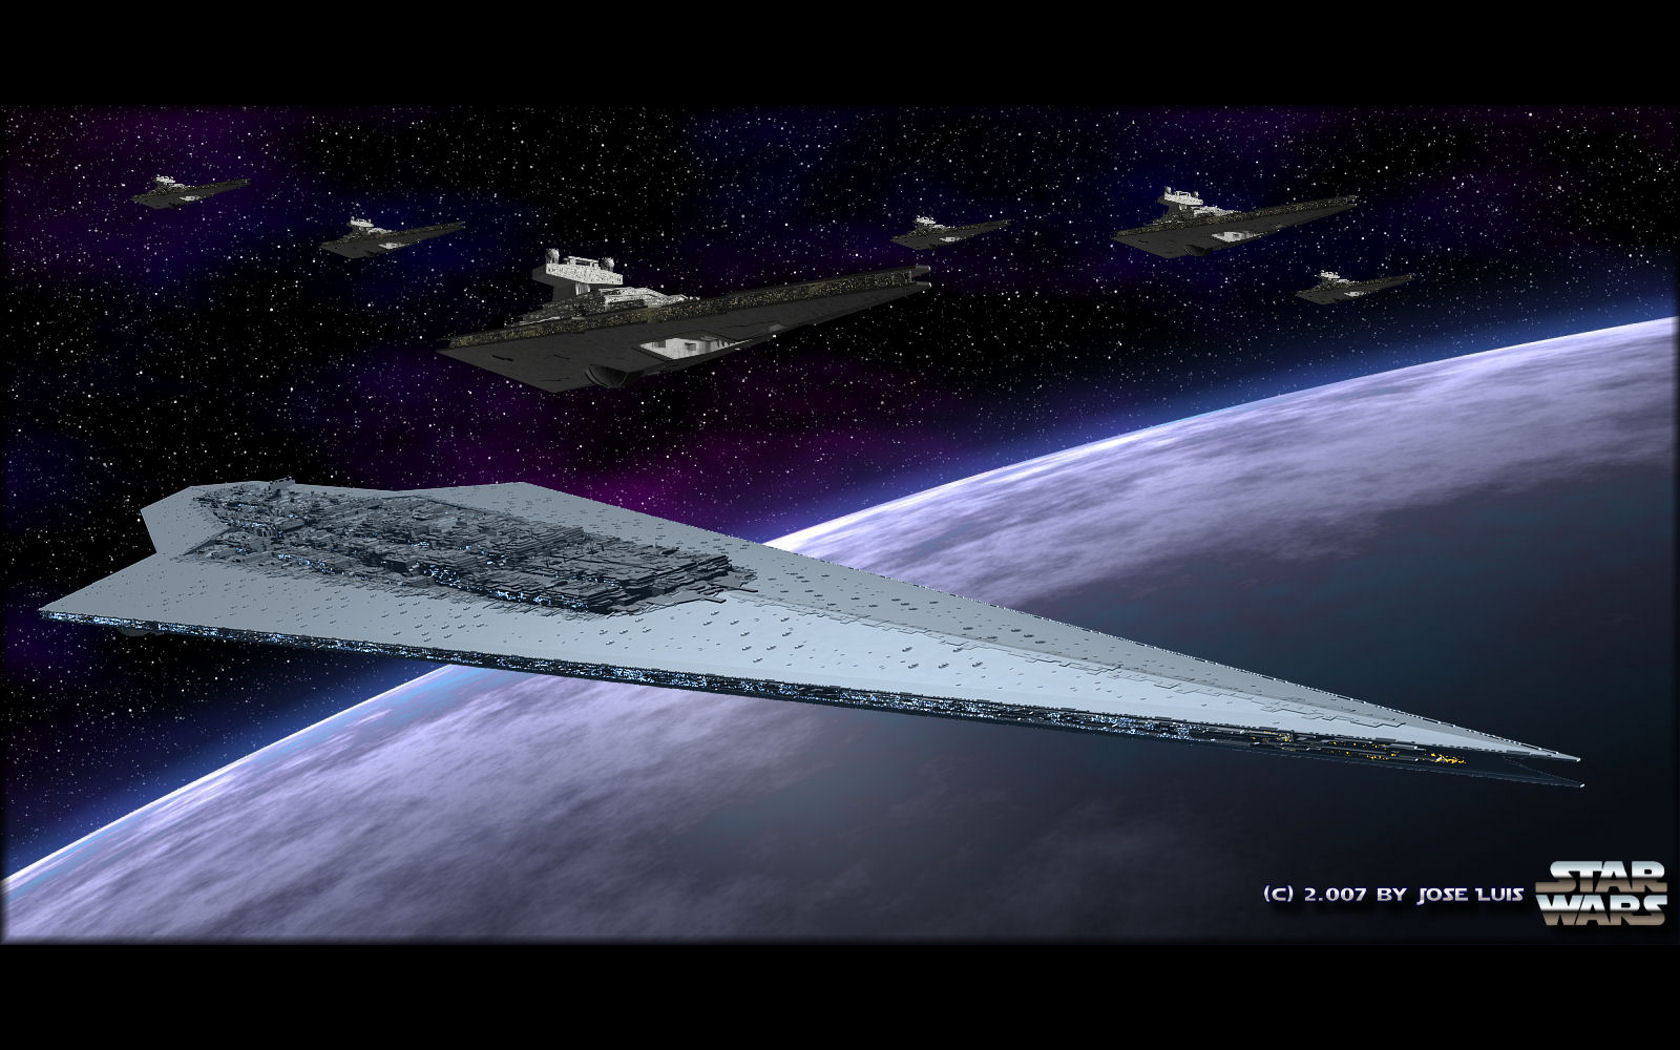 s star wars starship wallpapers - photo #18